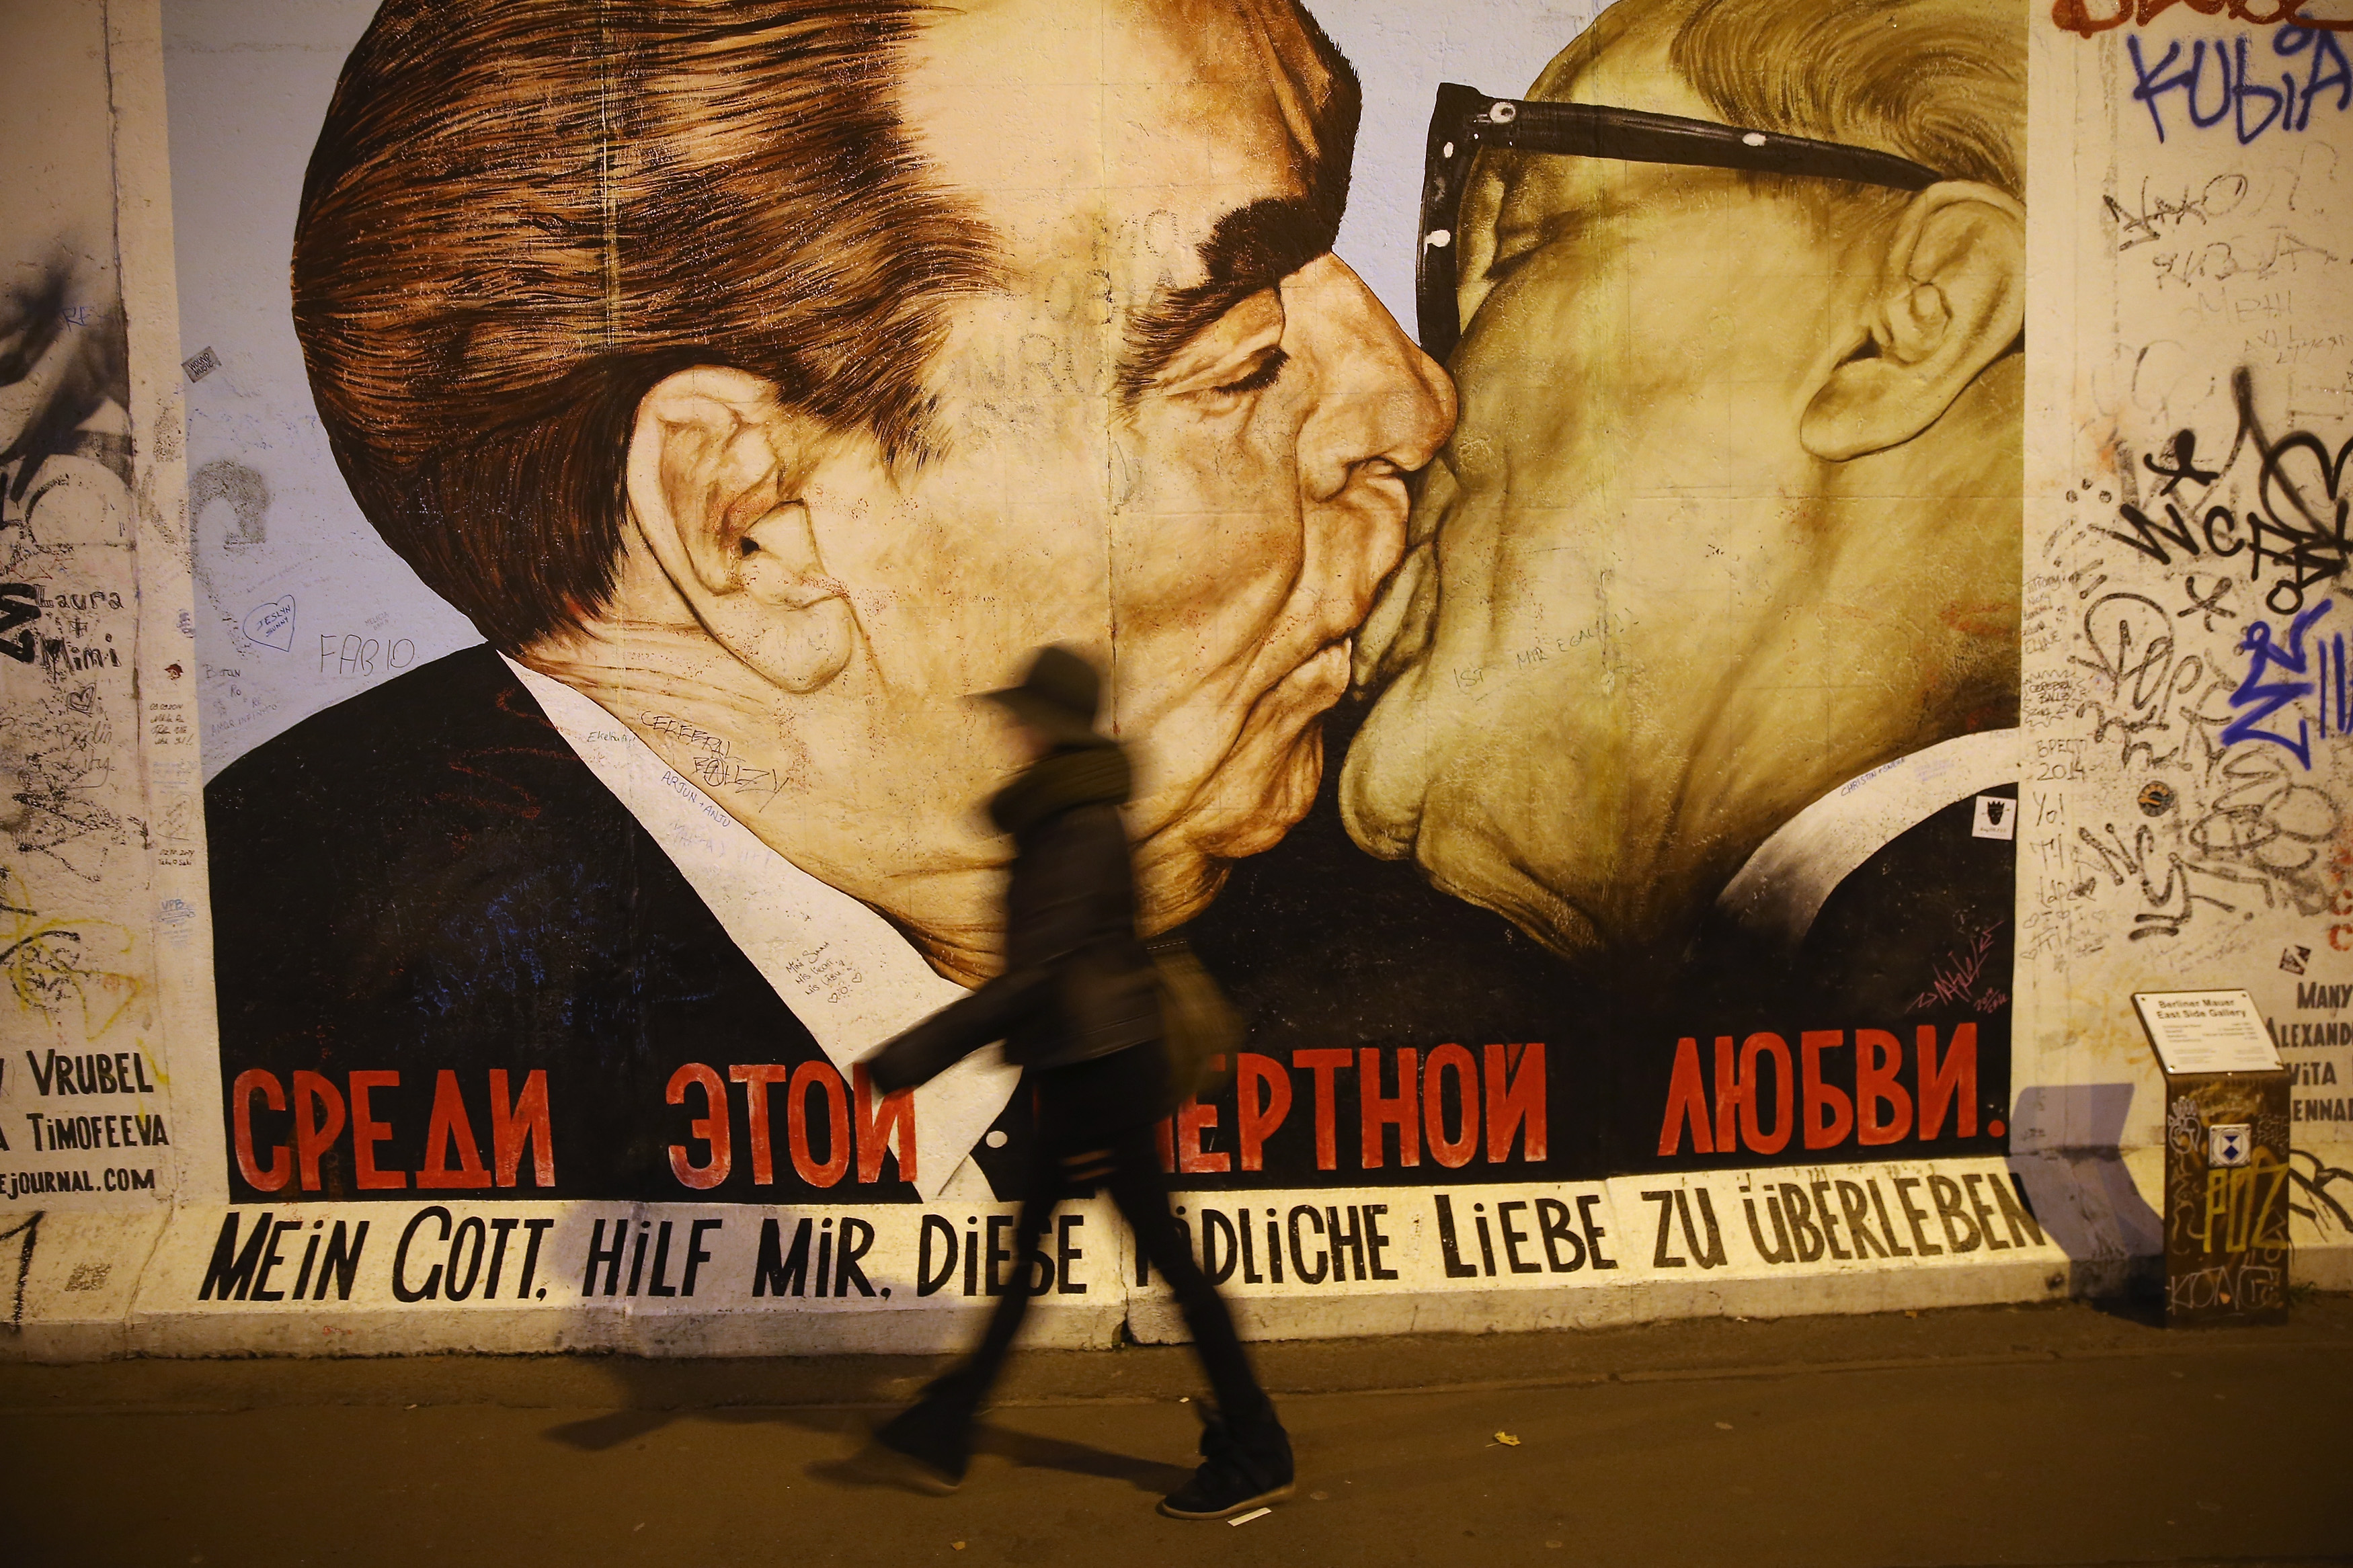 A visitor walks past a mural showing former Soviet leader Leonid Brezhnev (L) kissing former East German communist leader Erich Honecker by Russian painter Dmitri Vrubel at the East Side Gallery on Oct. 28, 2014 in Berlin, Germany.